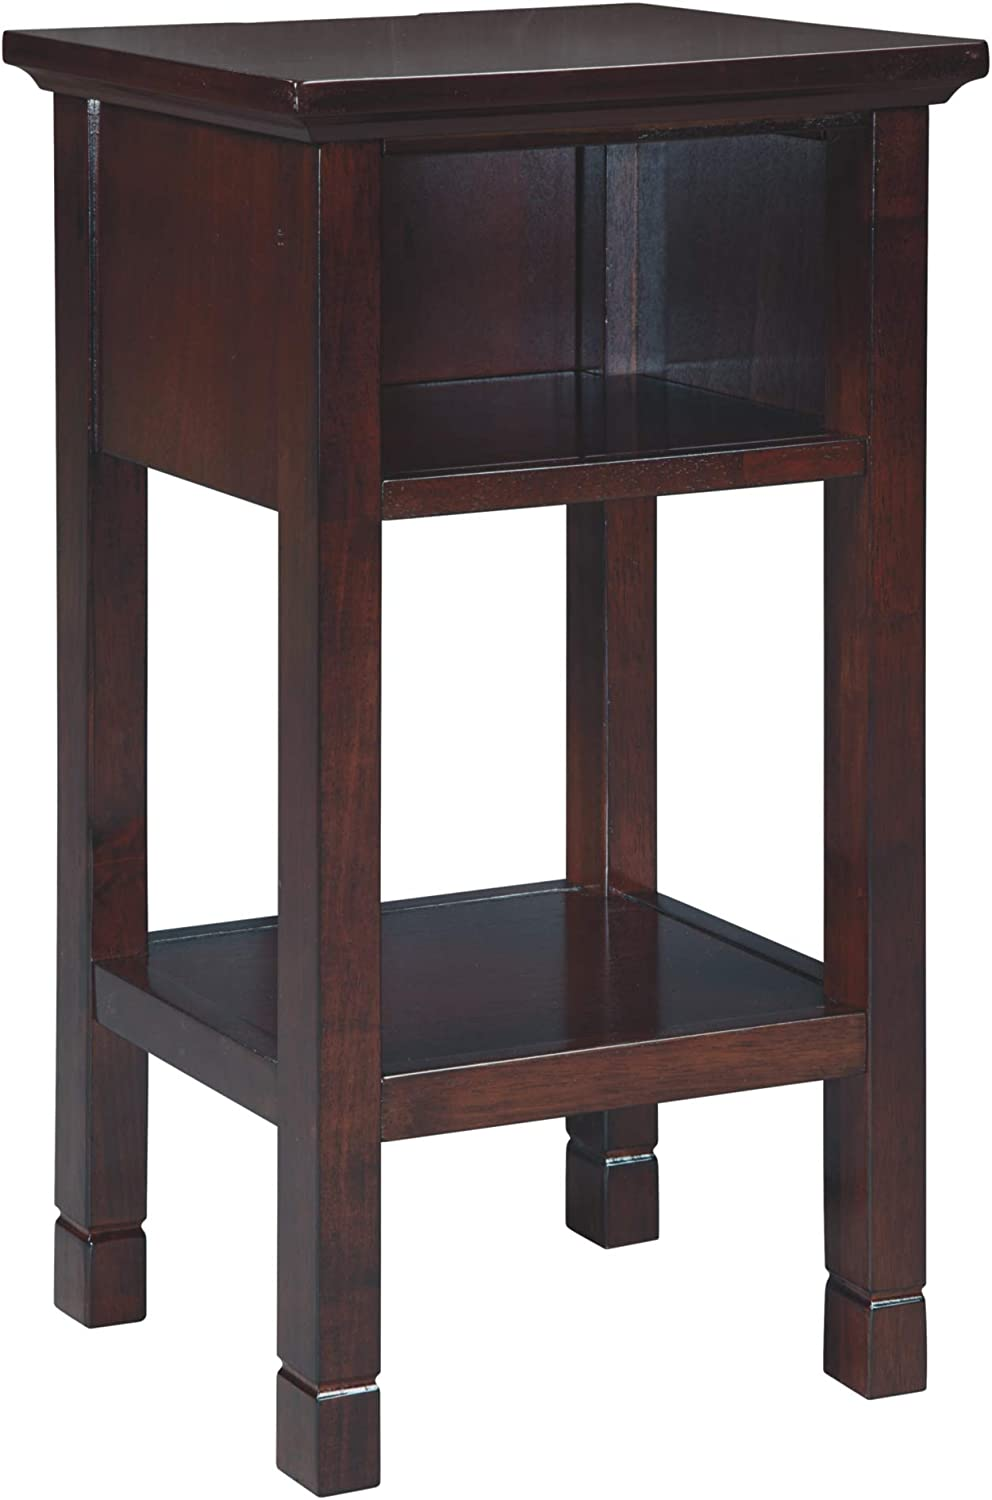 Signature Design by Ashley - Marnville Accent Table - With USB Hook-Up - Contemporary - Reddish Brown